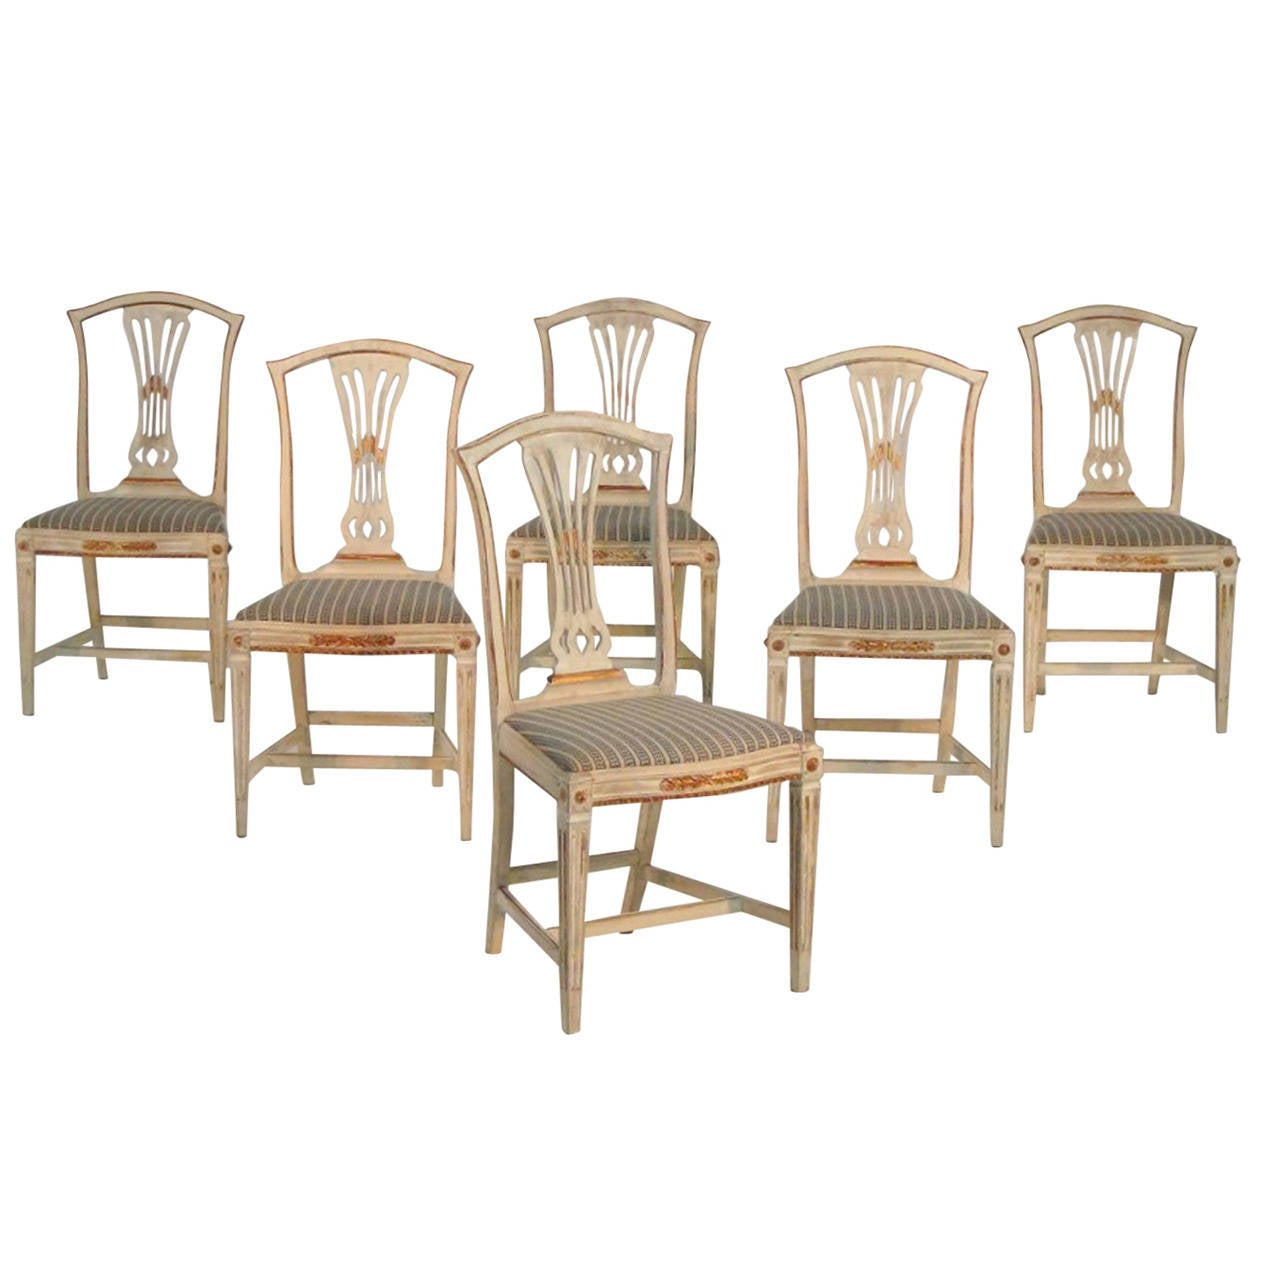 301 moved permanently for Swedish style dining chairs